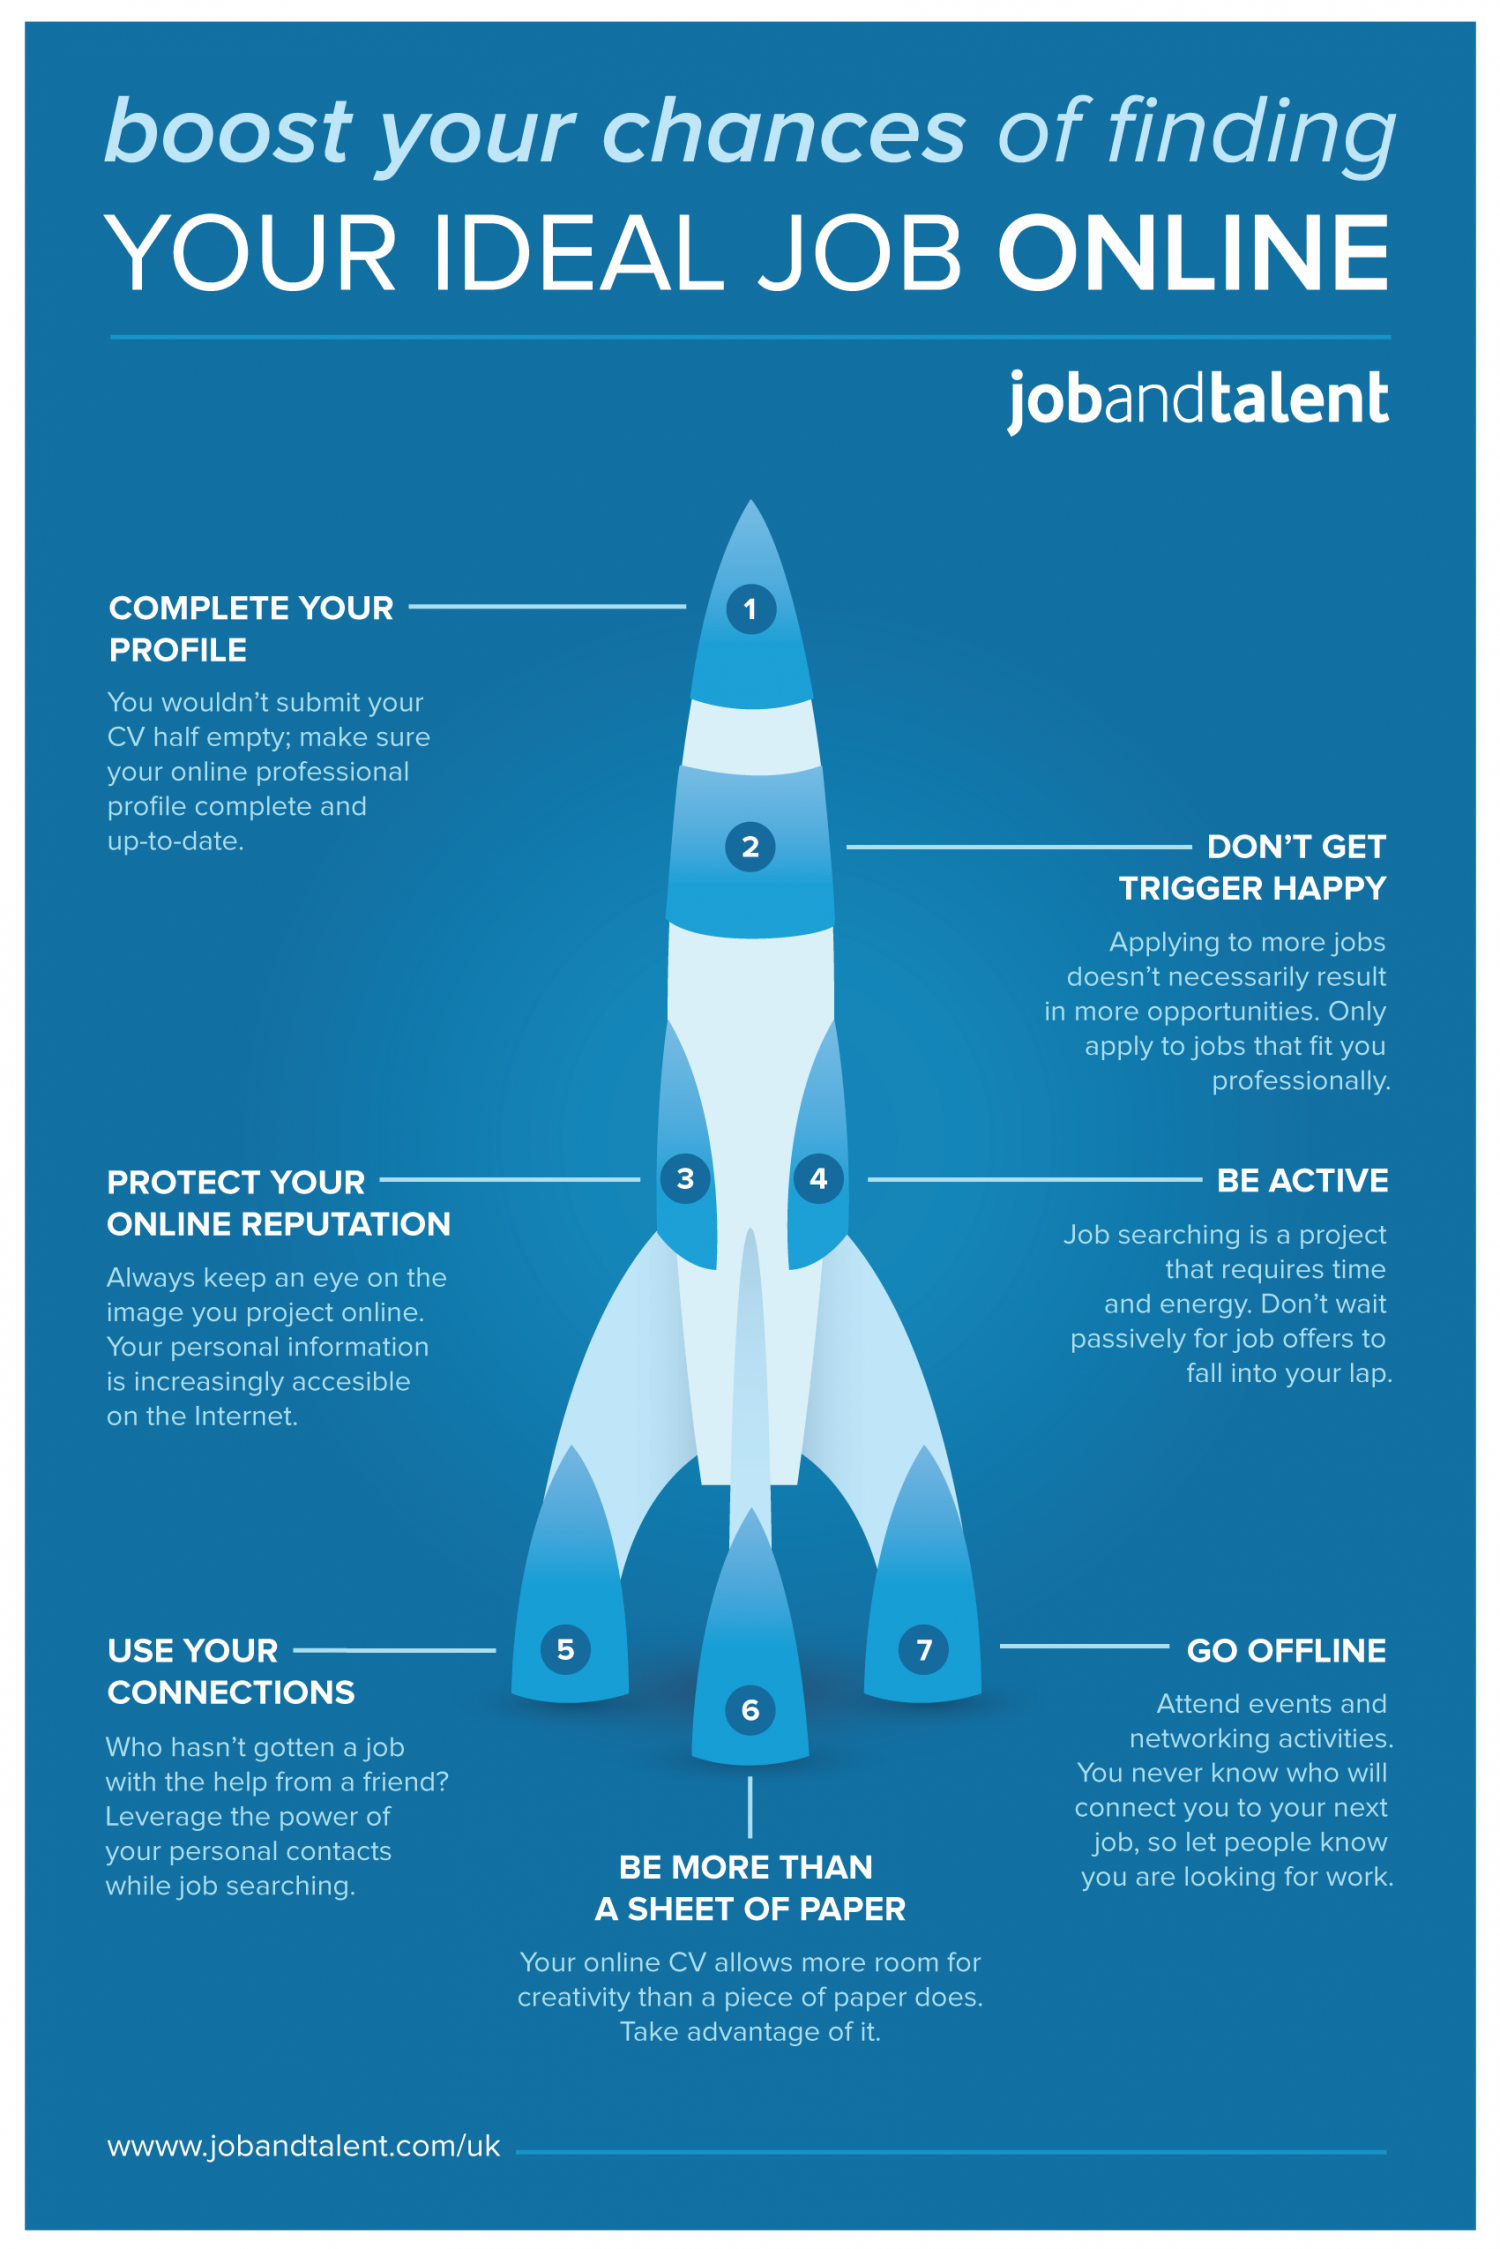 Boost your chances of finding your ideal job online Infographic